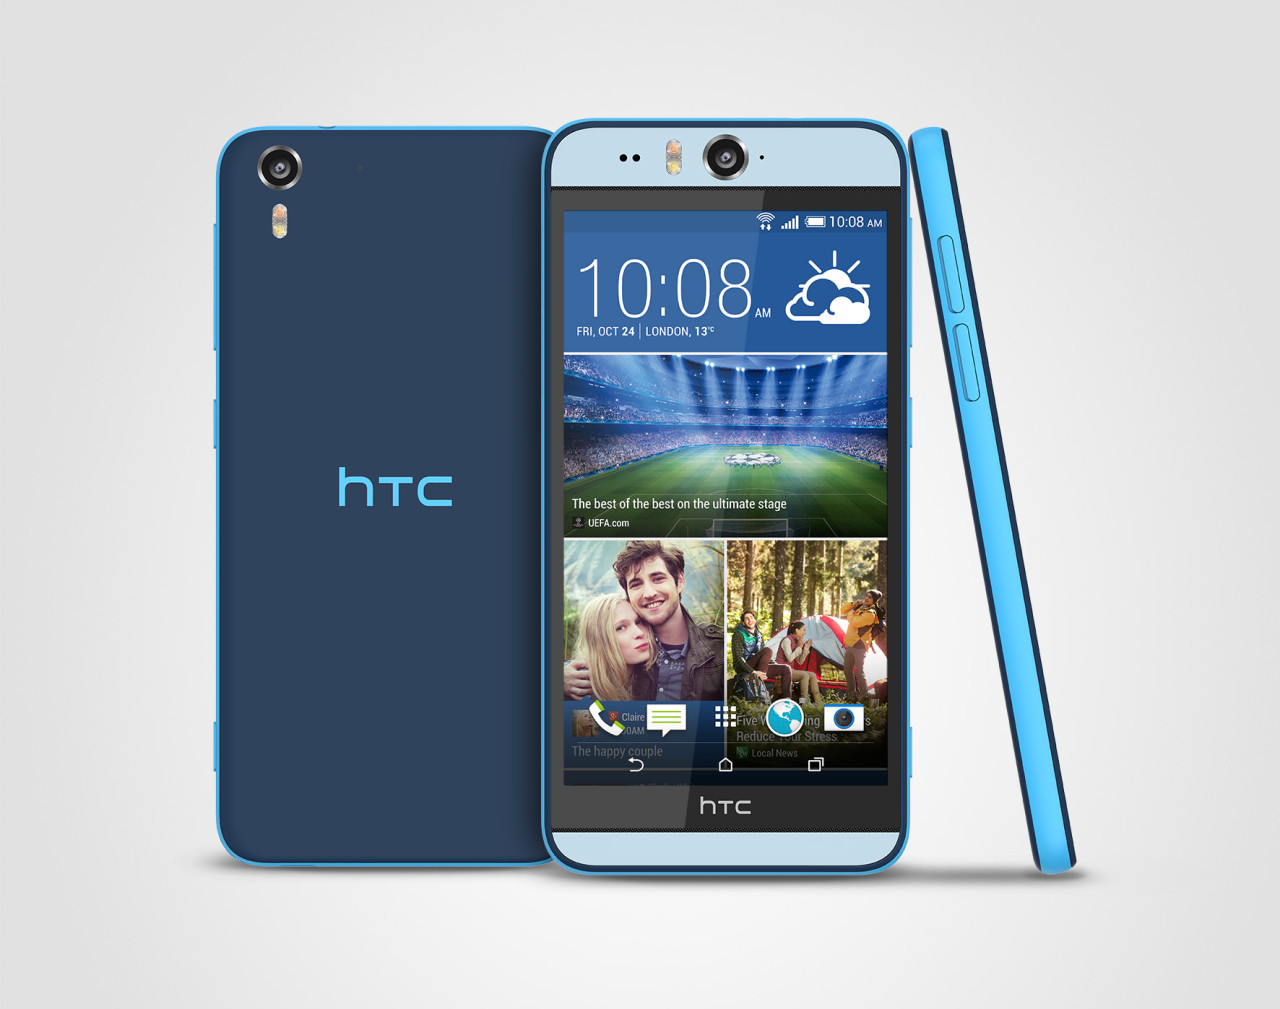 HTC-Desire-Eye-Matt-Blue-Stack-300dpi-1280x1009.jpg